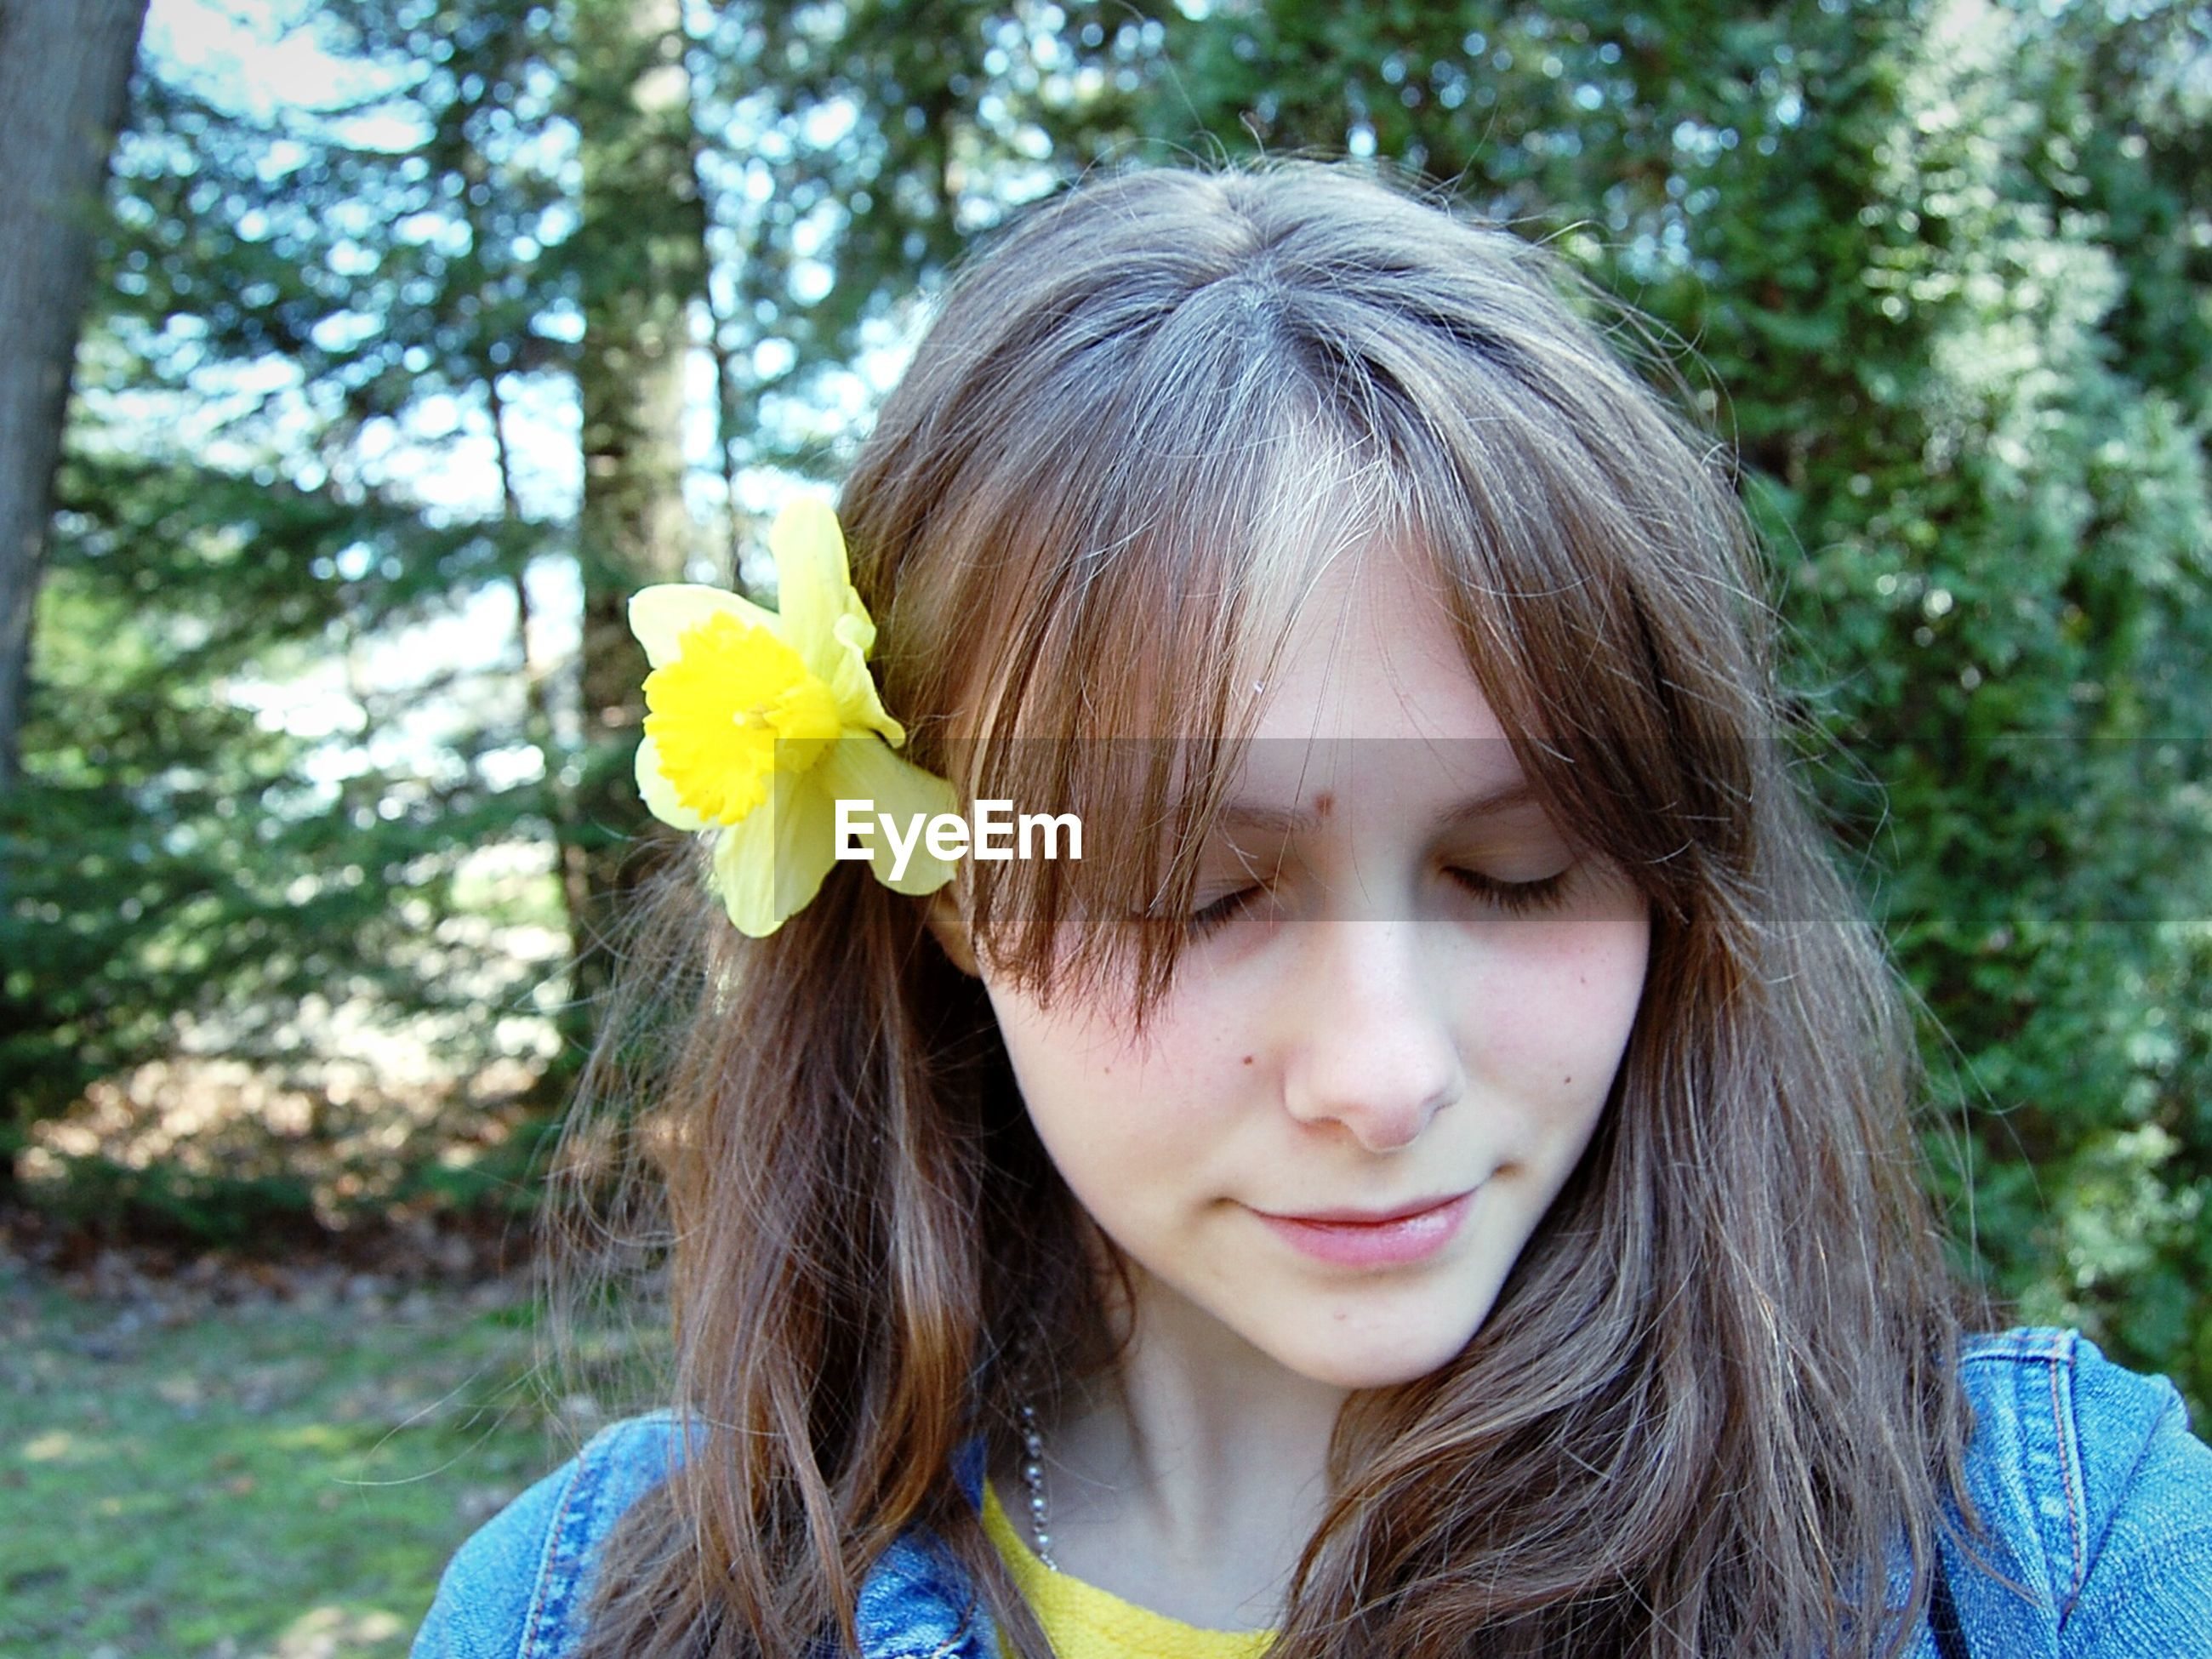 one person, childhood, outdoors, front view, day, girls, flower, yellow, close-up, headshot, tree, real people, nature, people